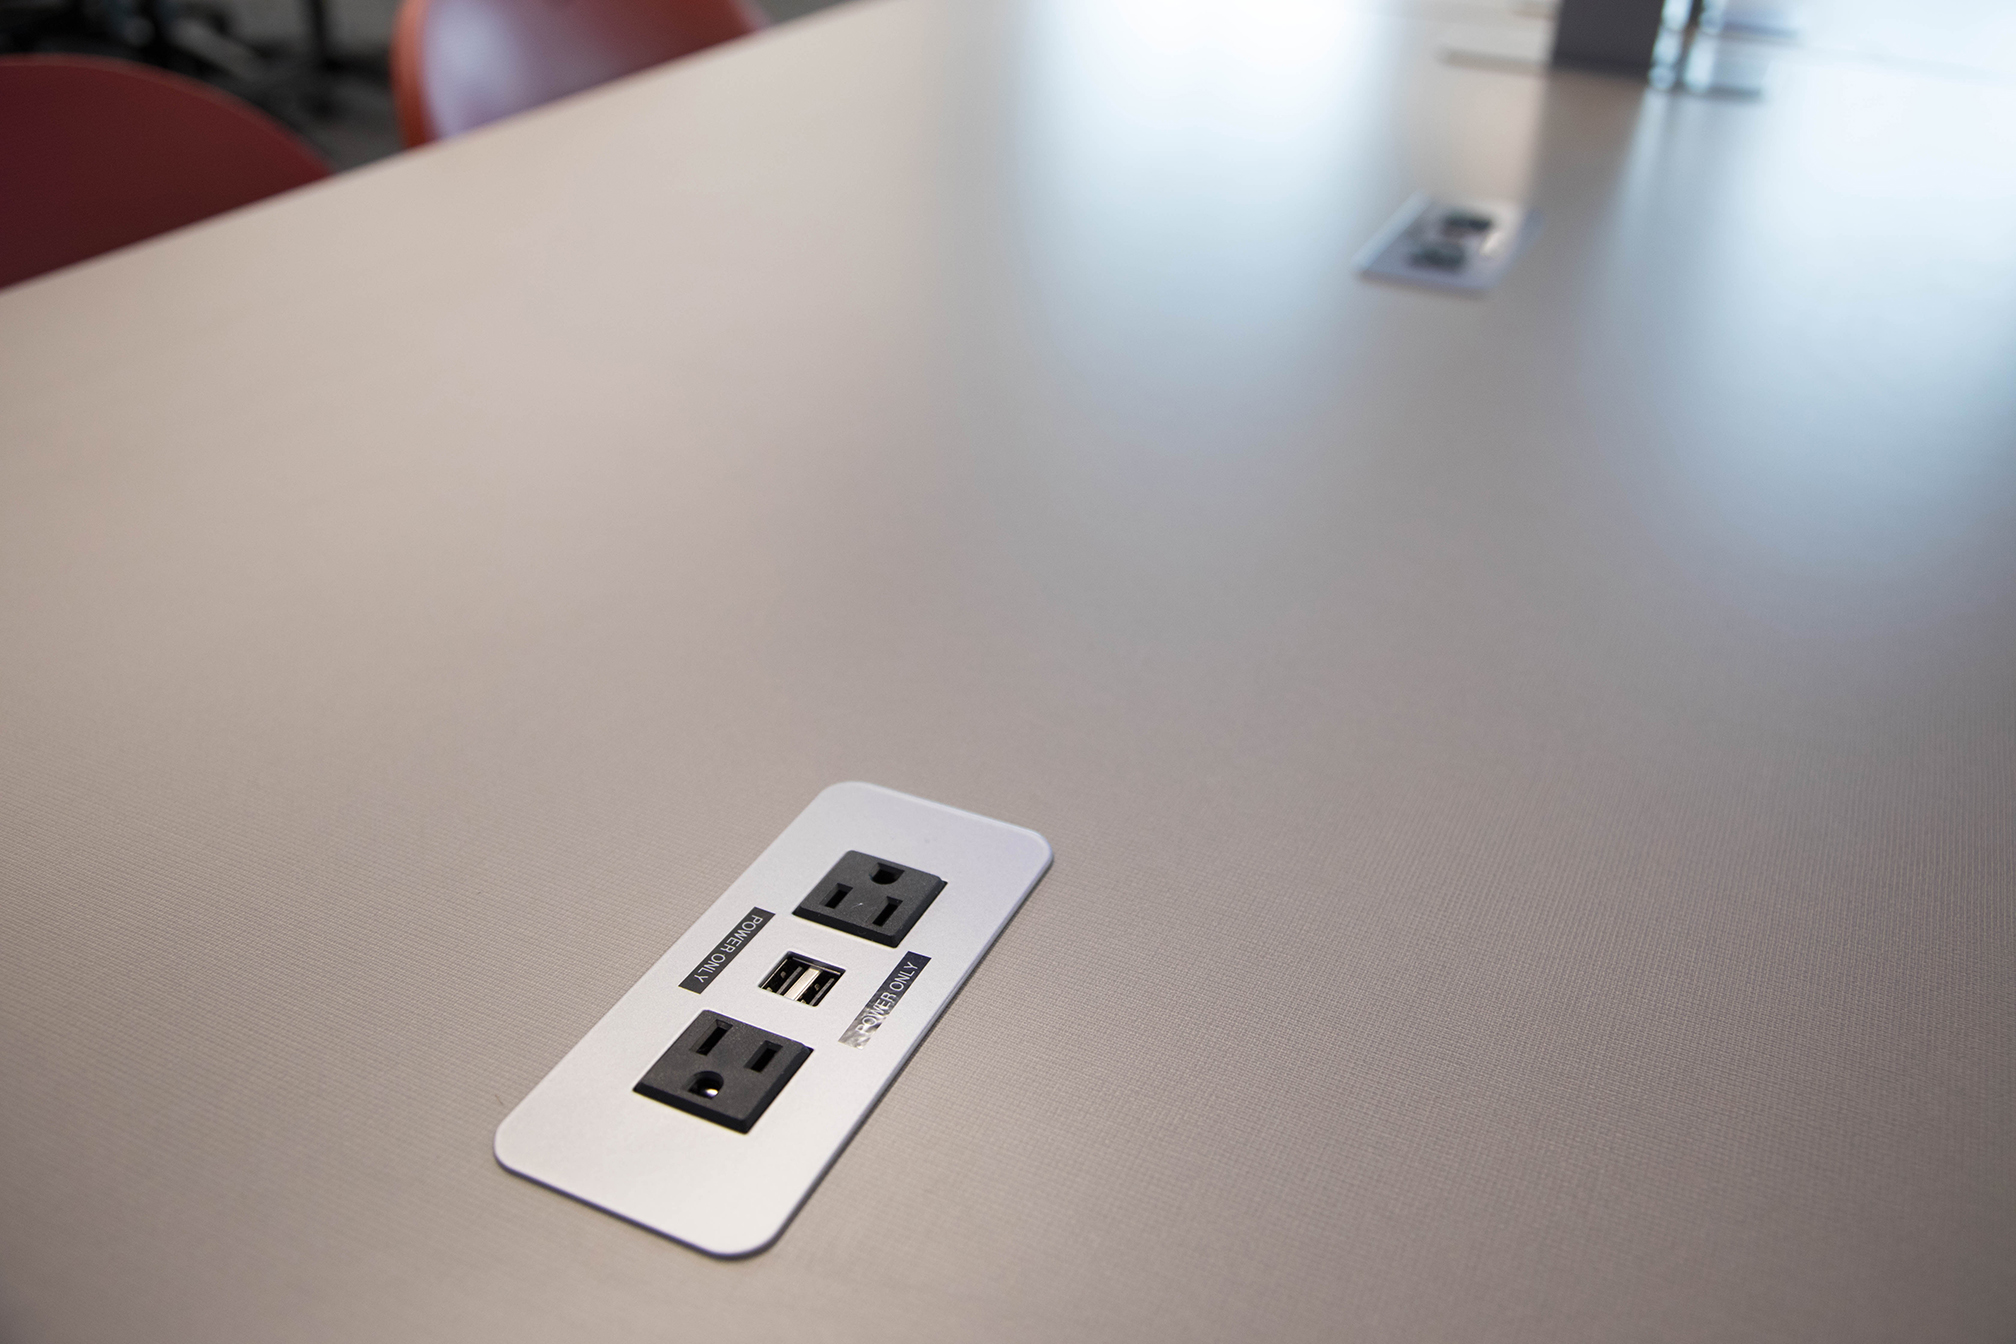 DCB 235 Table-top electrical outlets